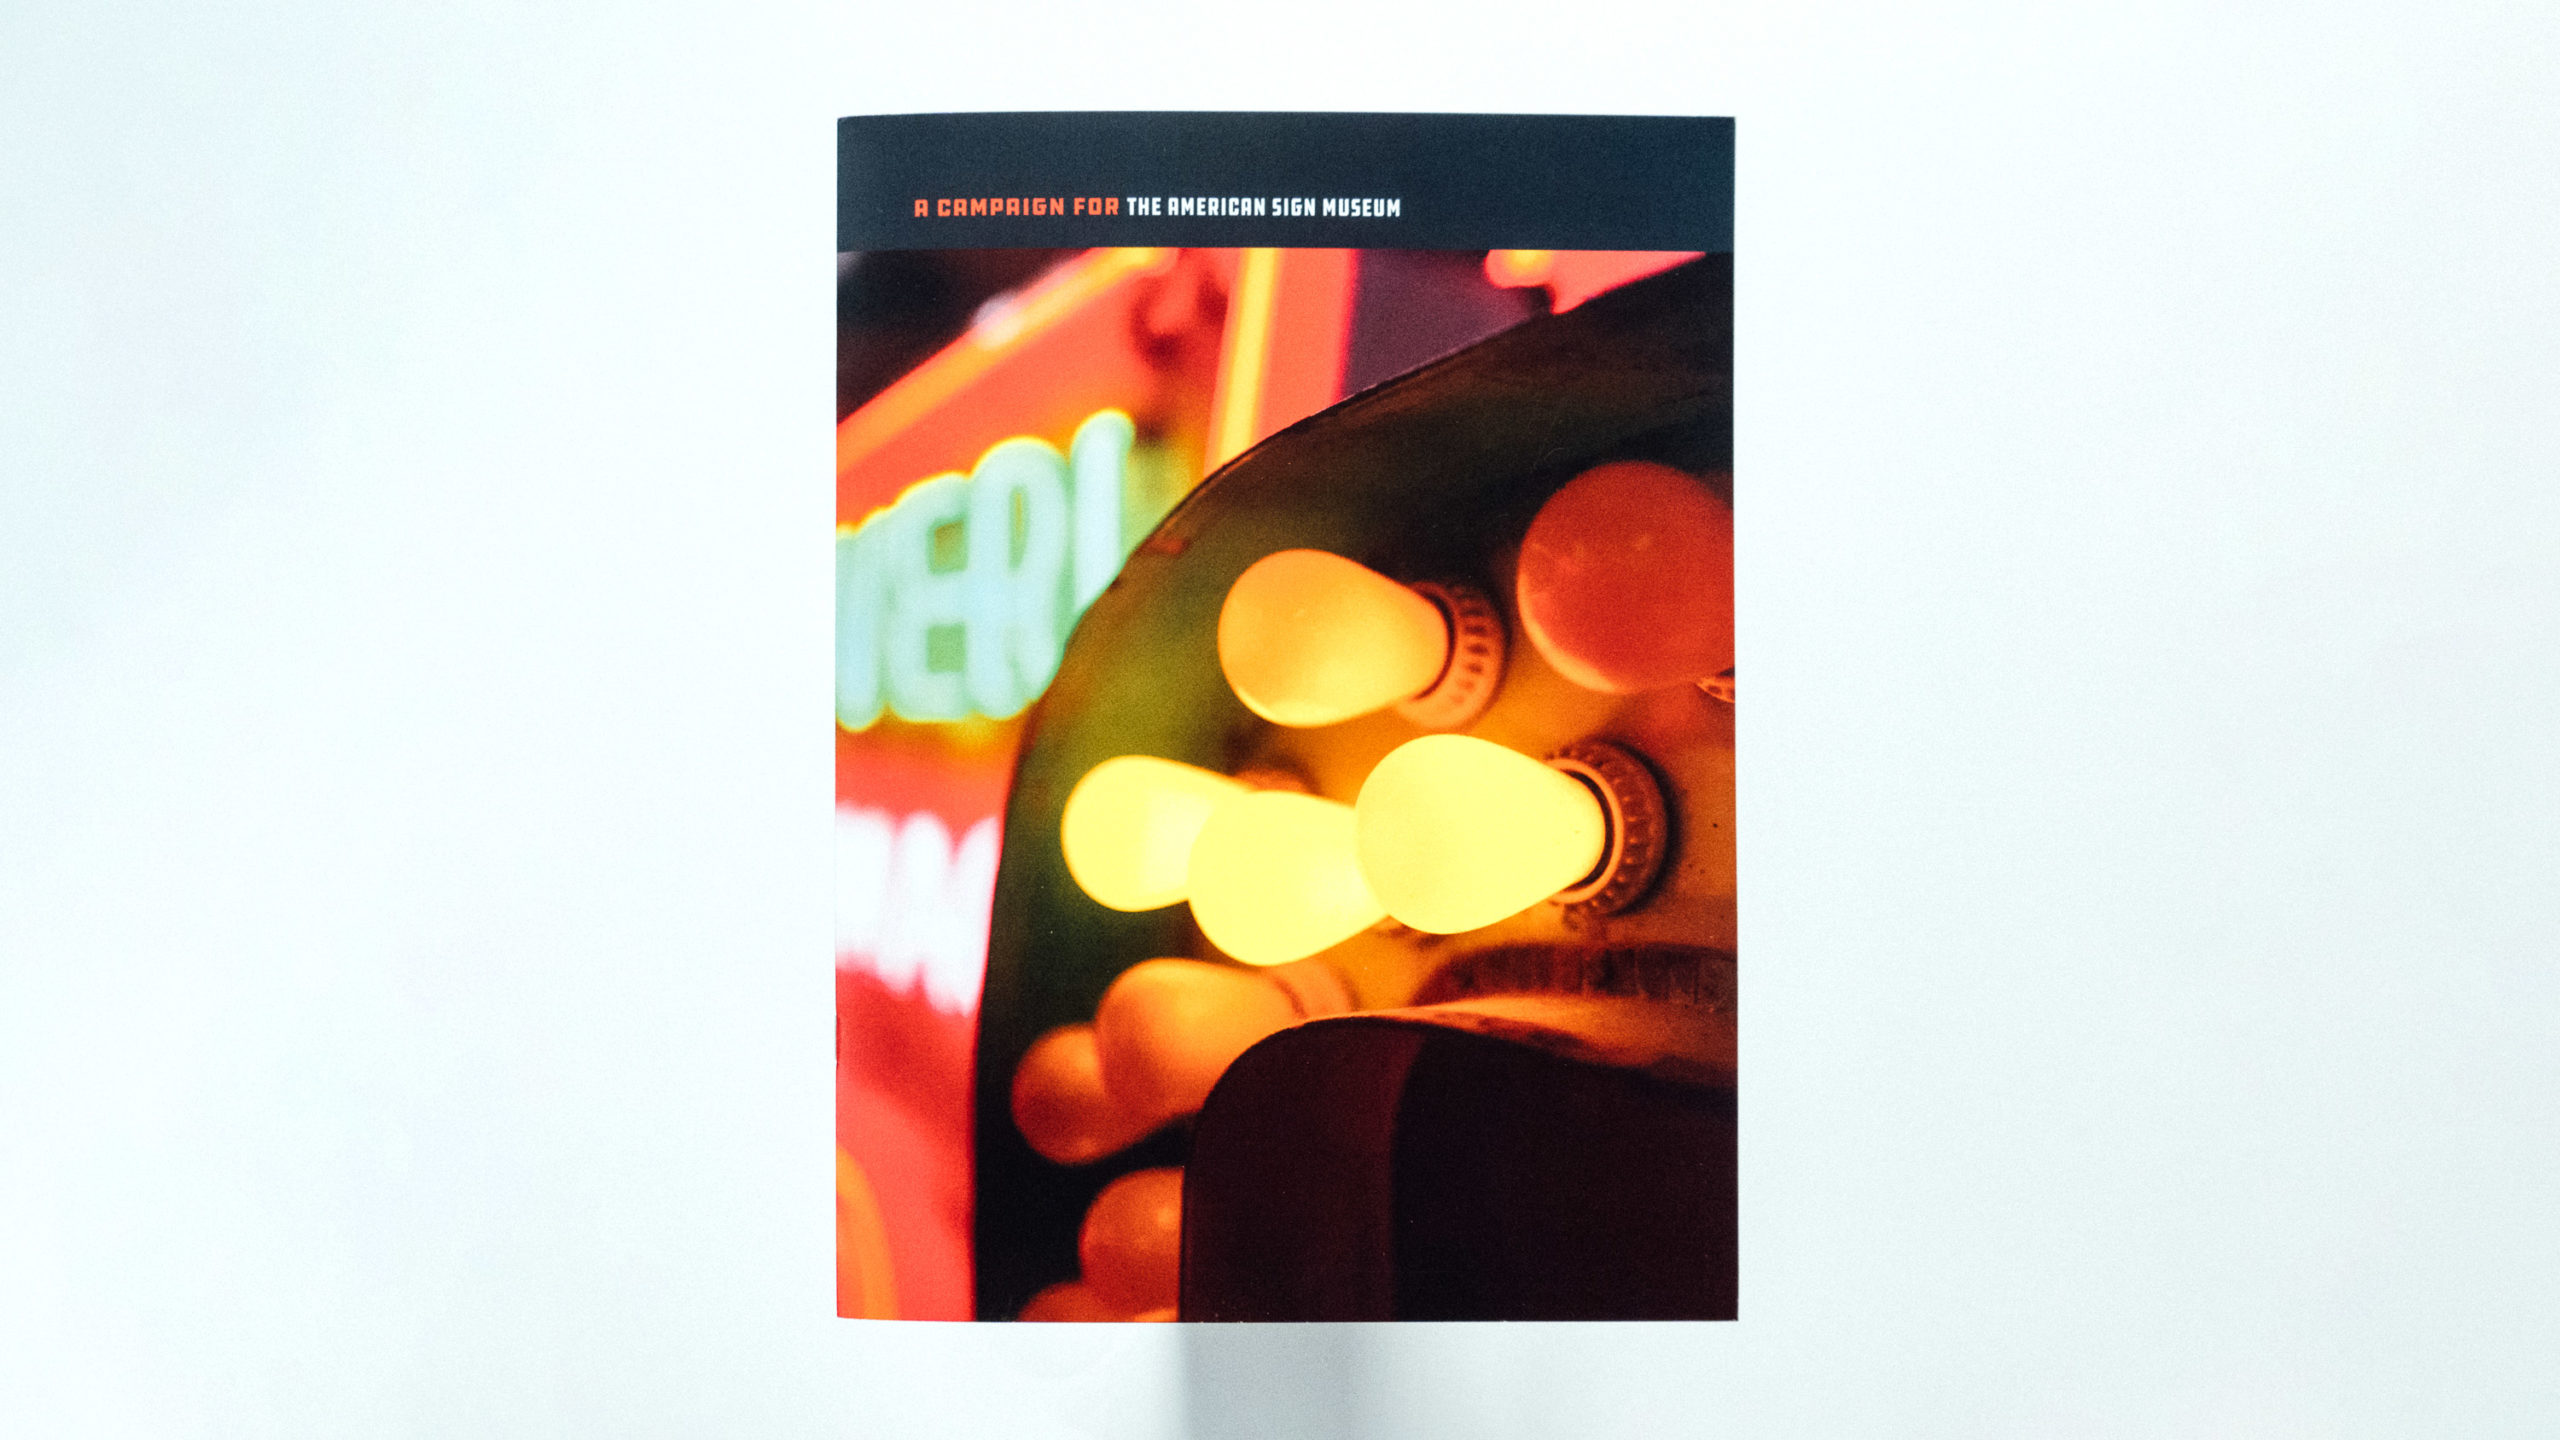 American Sign Museum prospectus cover featuring a photograph of a sign with light bulbs